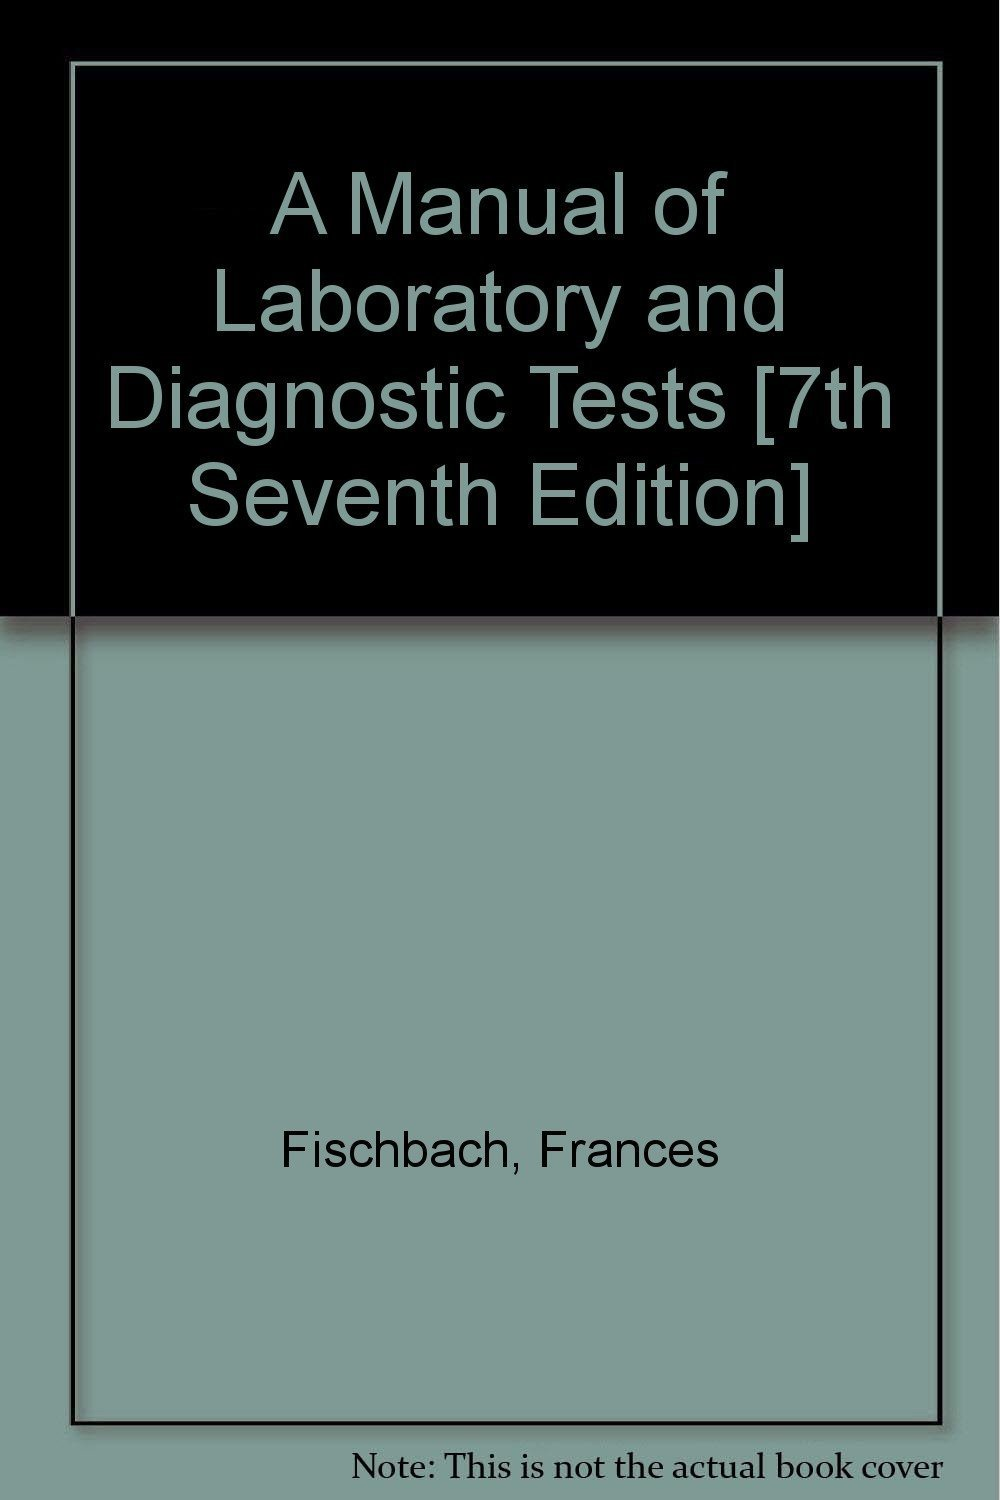 A Manual of Laboratory and Diagnostic Tests [7th Seventh Edition]: Frances  Fischbach: Amazon.com: Books